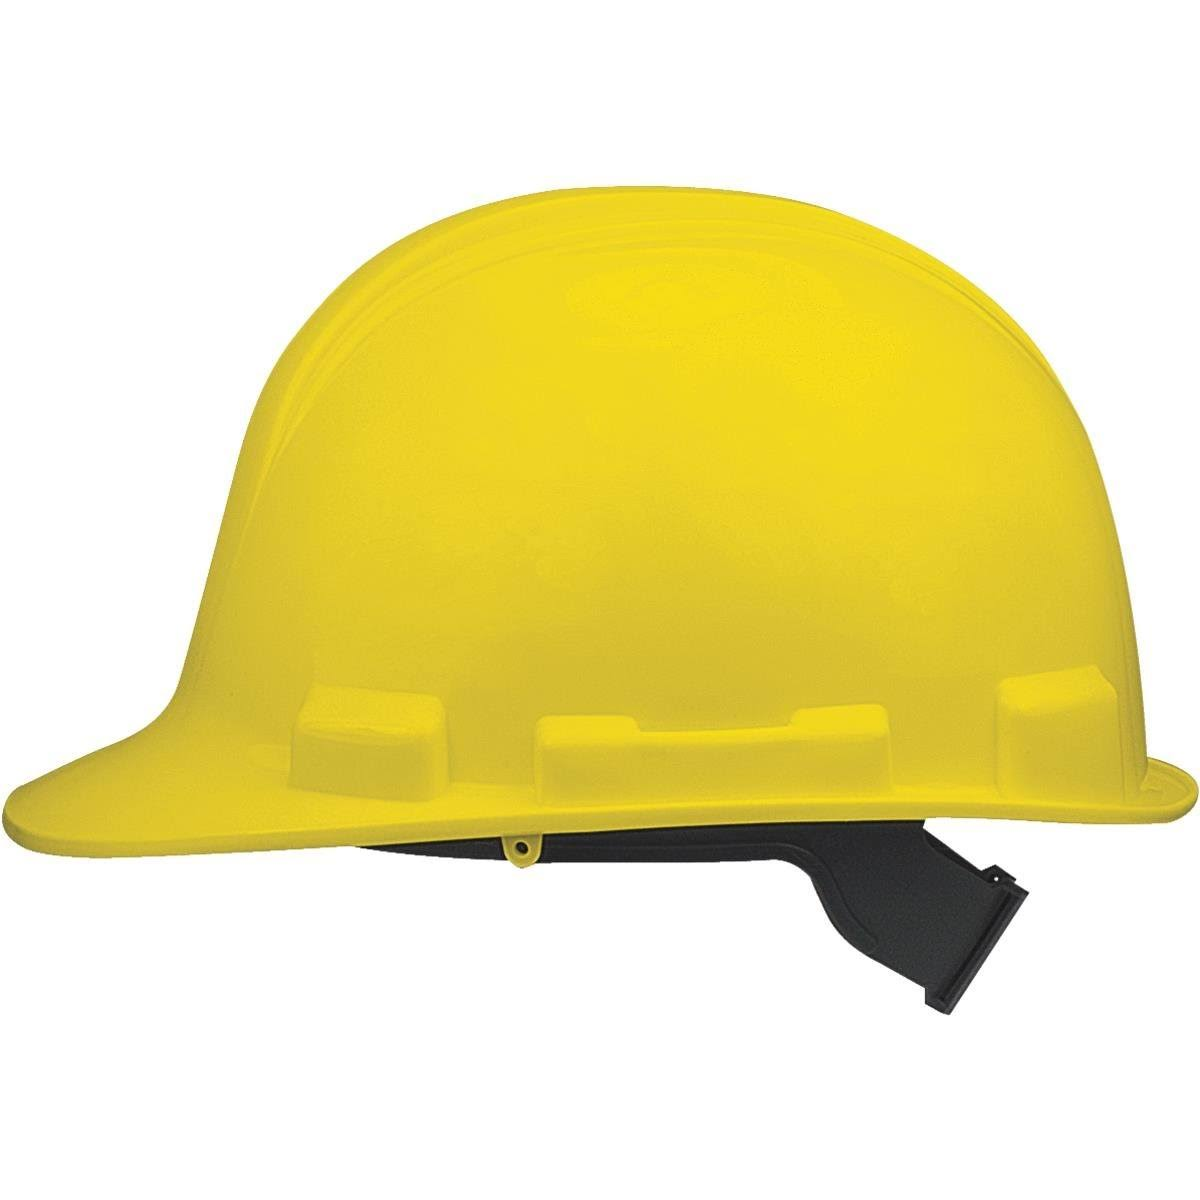 Safety Works Adjustable Suspension Hard Hat - Yellow